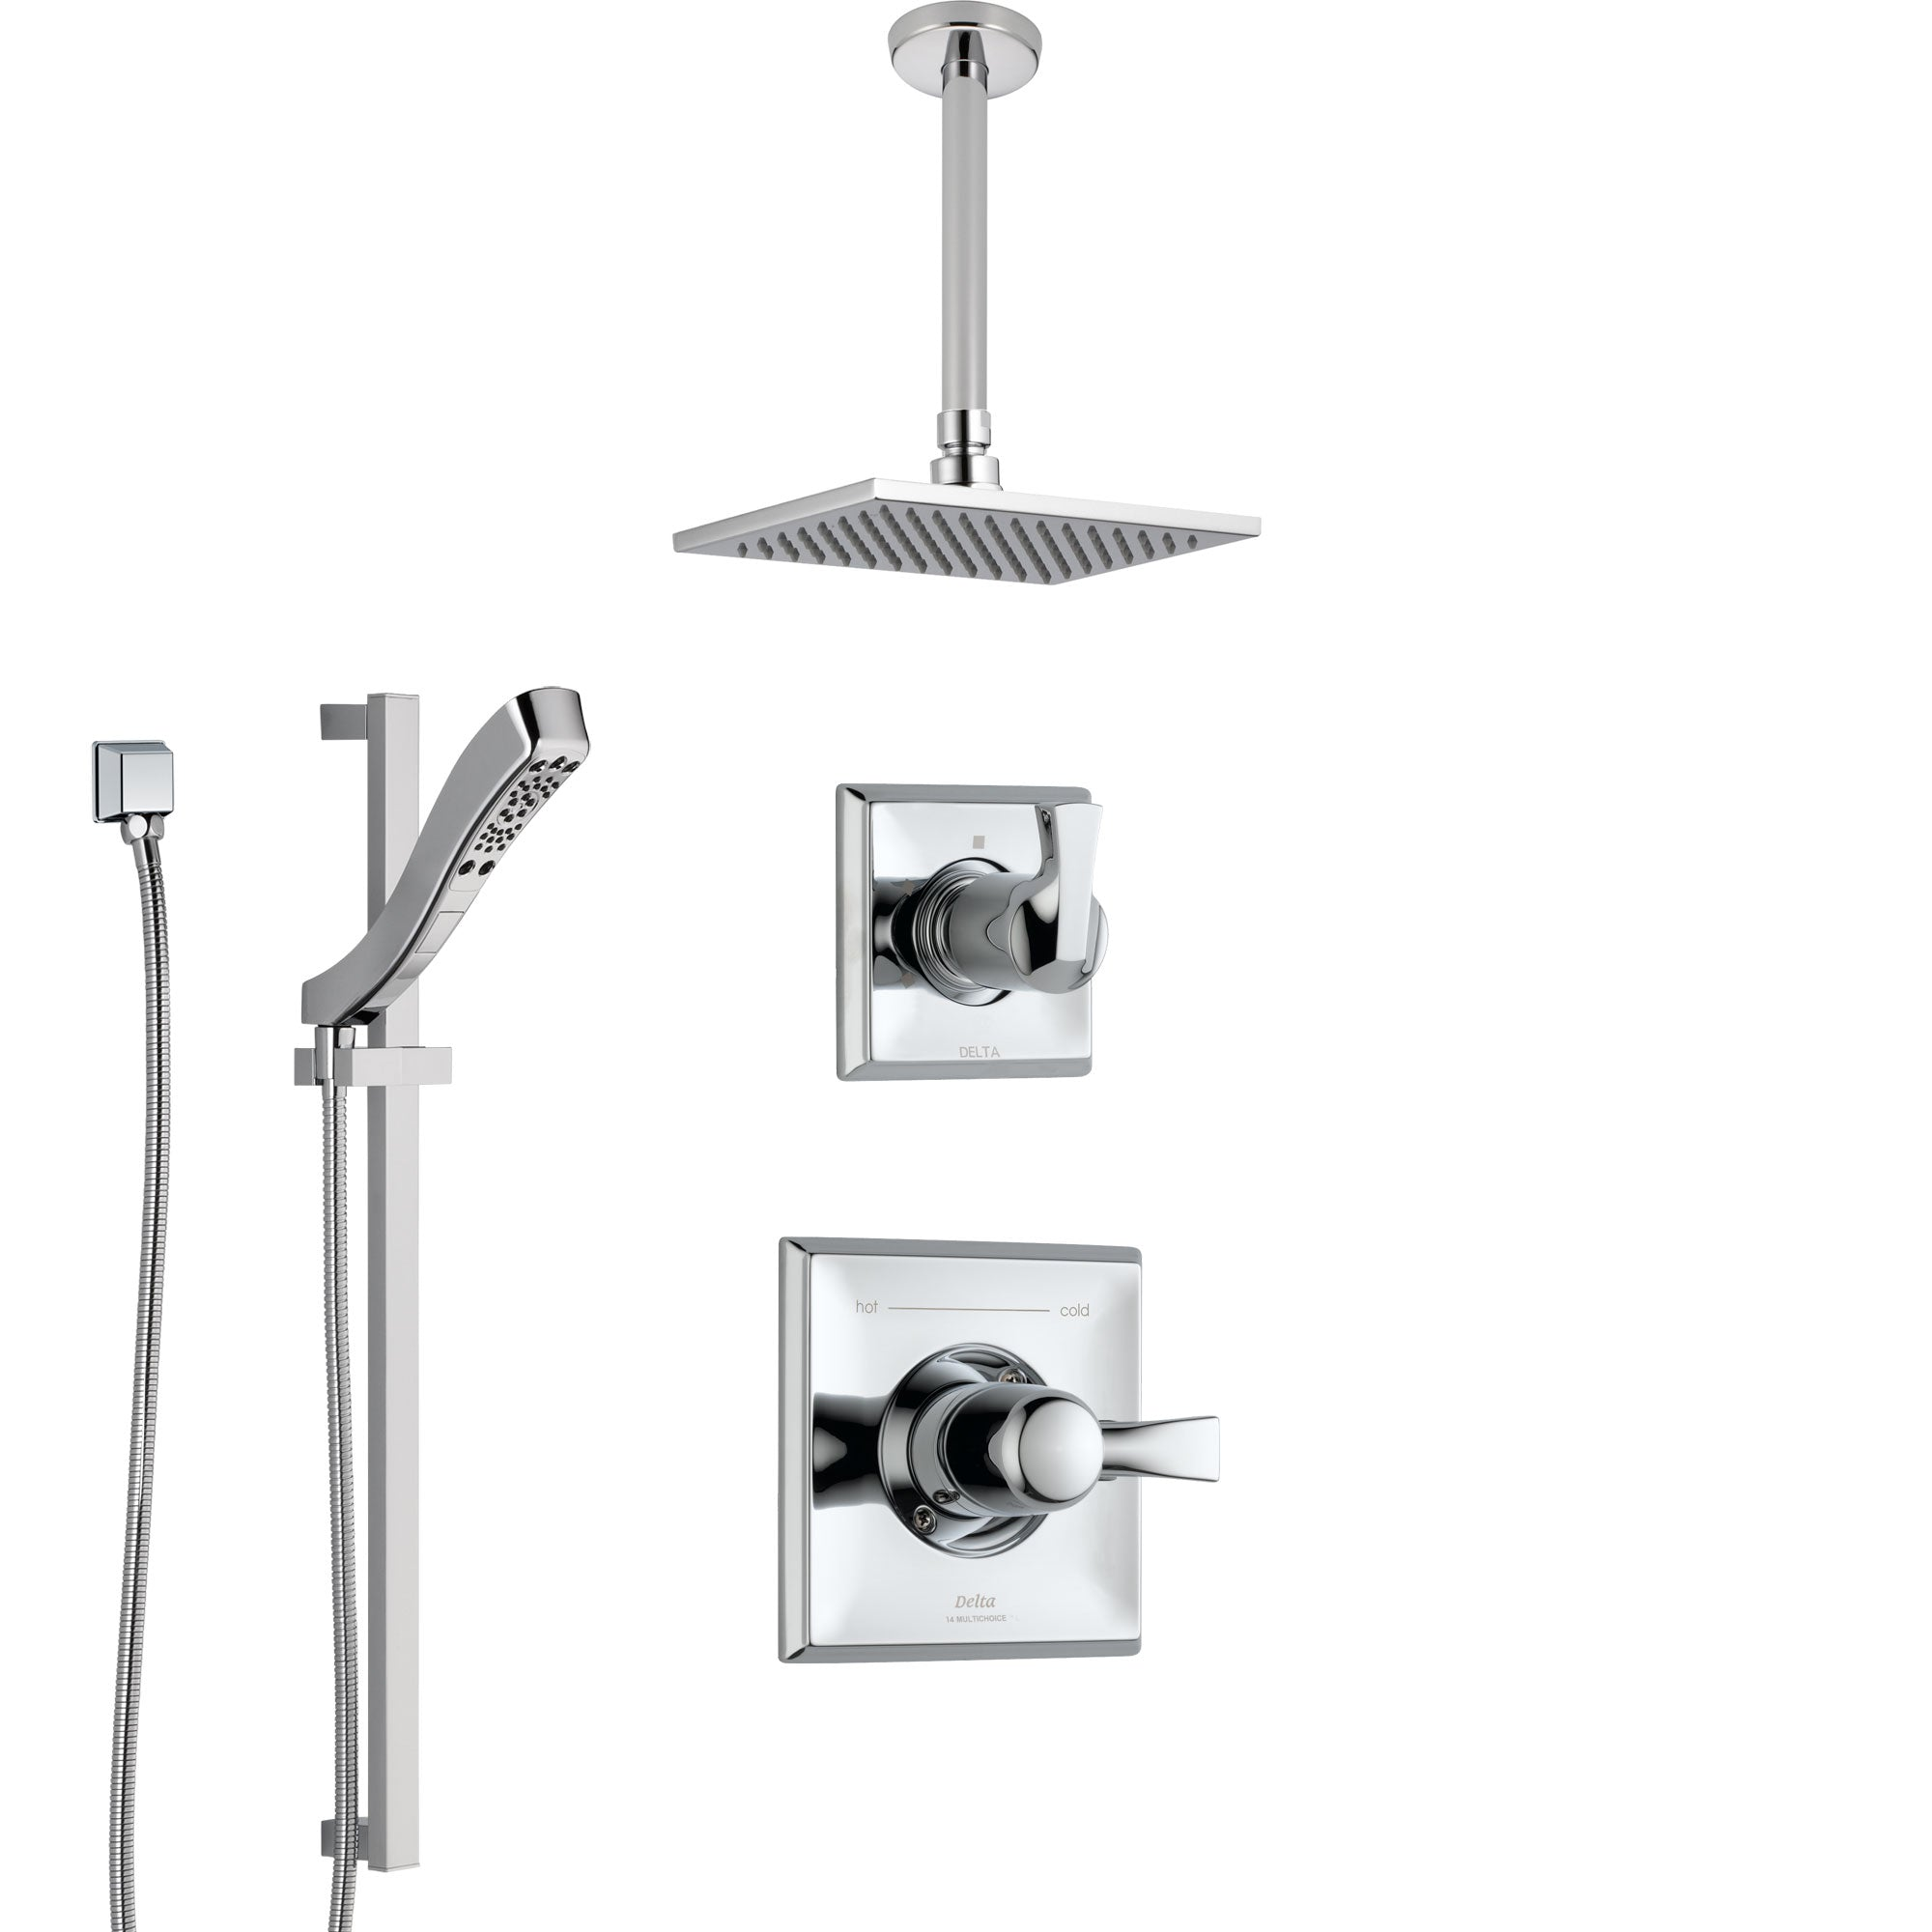 Delta Dryden Chrome Finish Shower System with Control Handle, 3-Setting Diverter, Ceiling Mount Showerhead, and Hand Shower with Slidebar SS14515